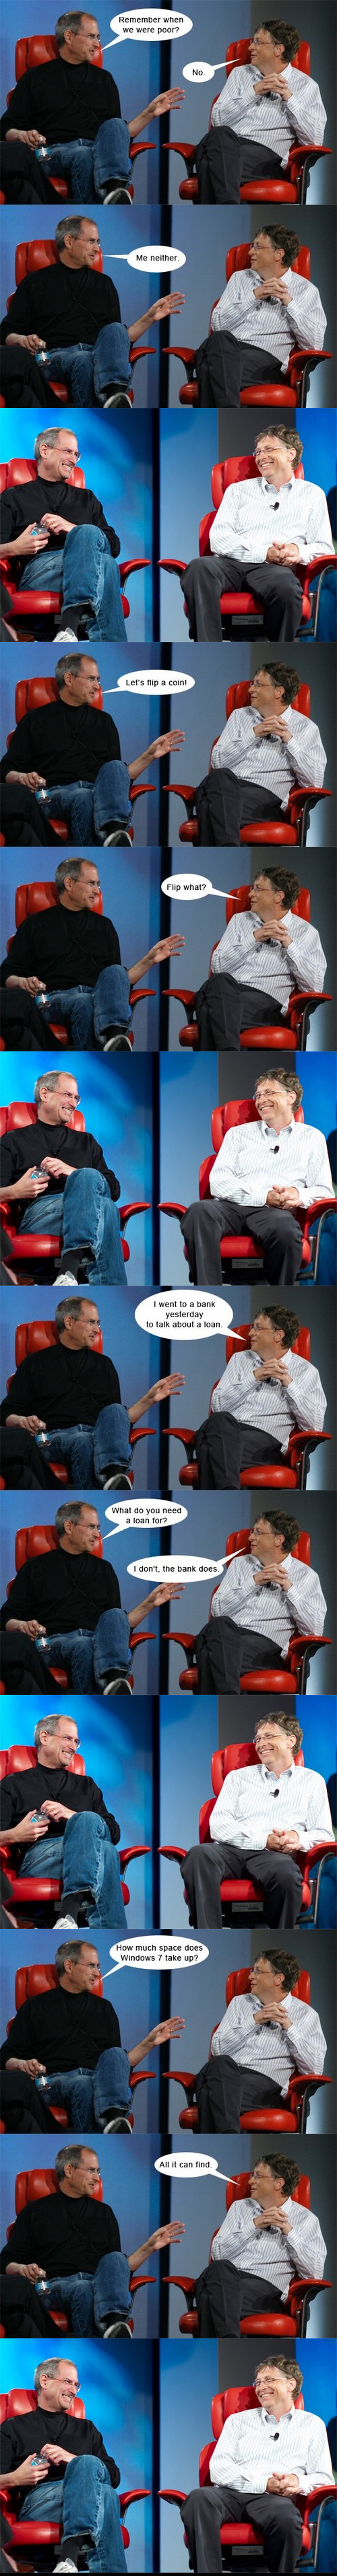 Funny Picture: Bill Gates and Steve Jobs Talking